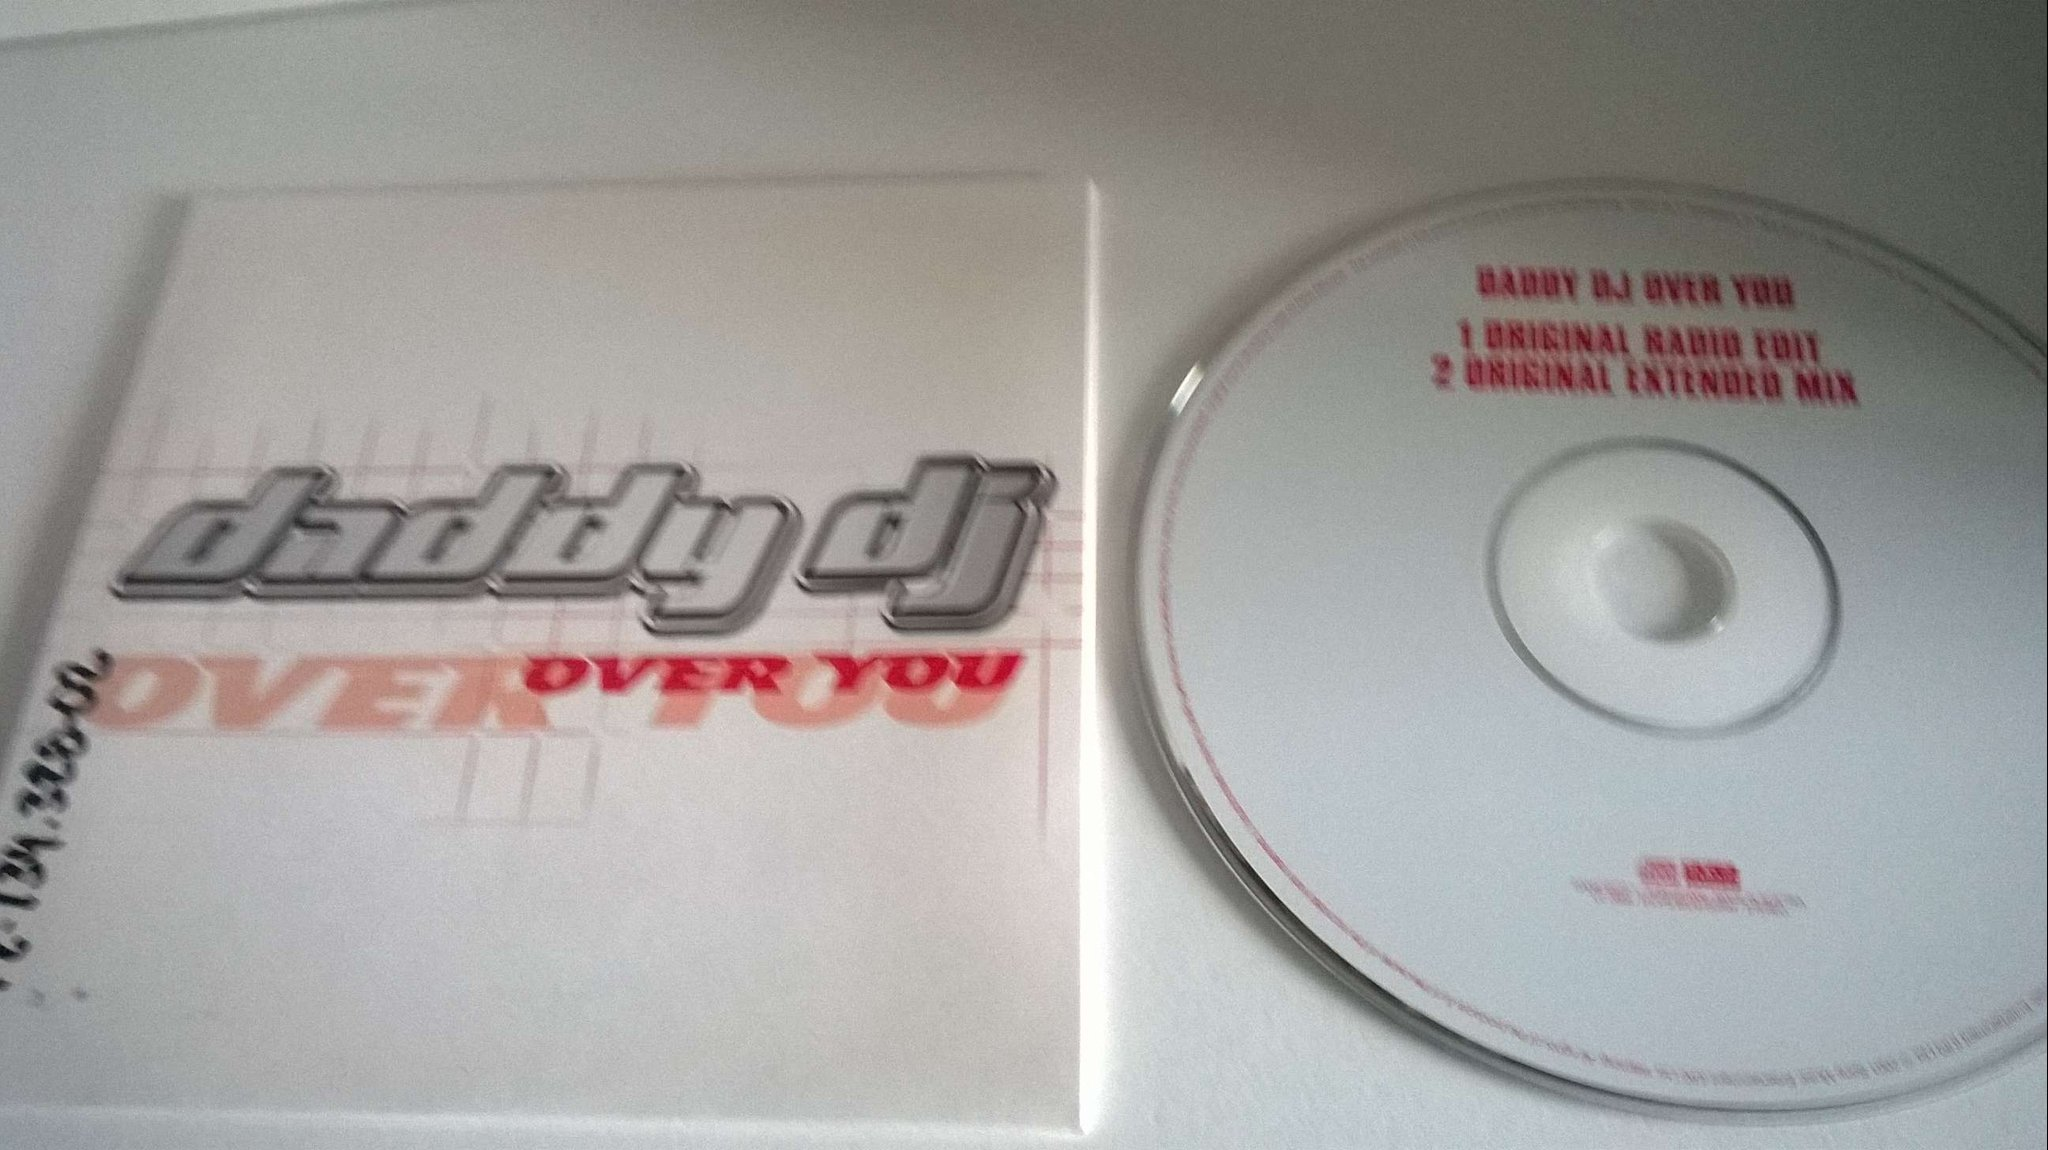 Daddy Dj - Over you, single CD